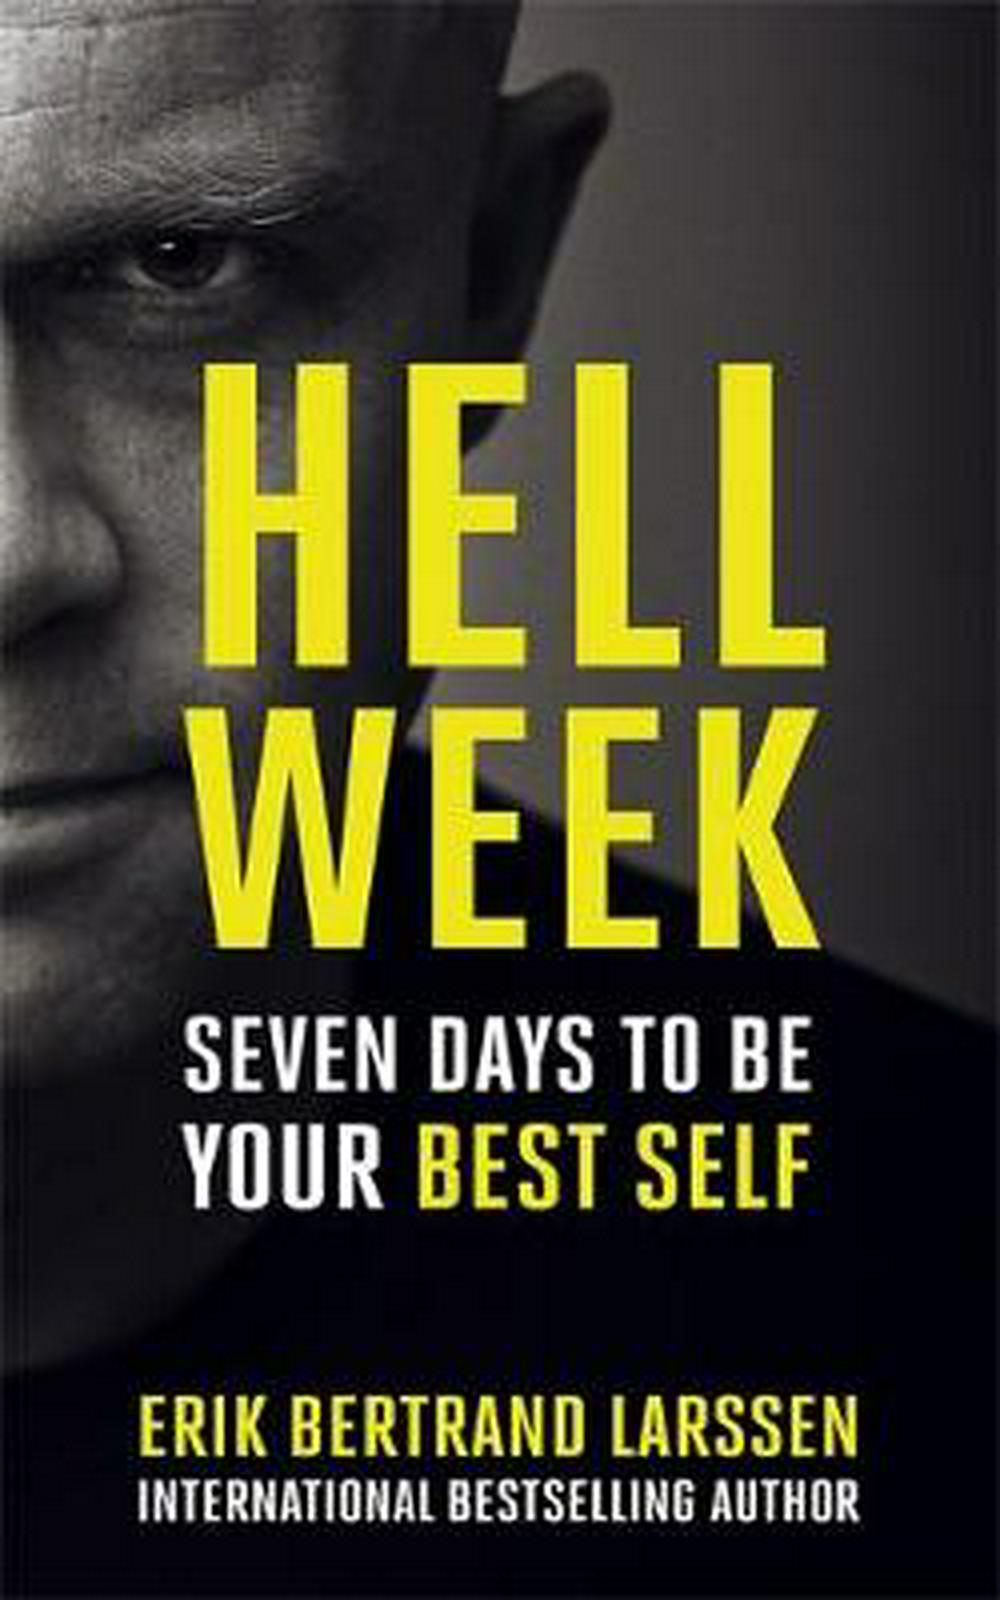 Hell Week: Seven Days to Be Your Best Self - Erik Bertrand Larssen - quotes, rating, reviews, where to buy